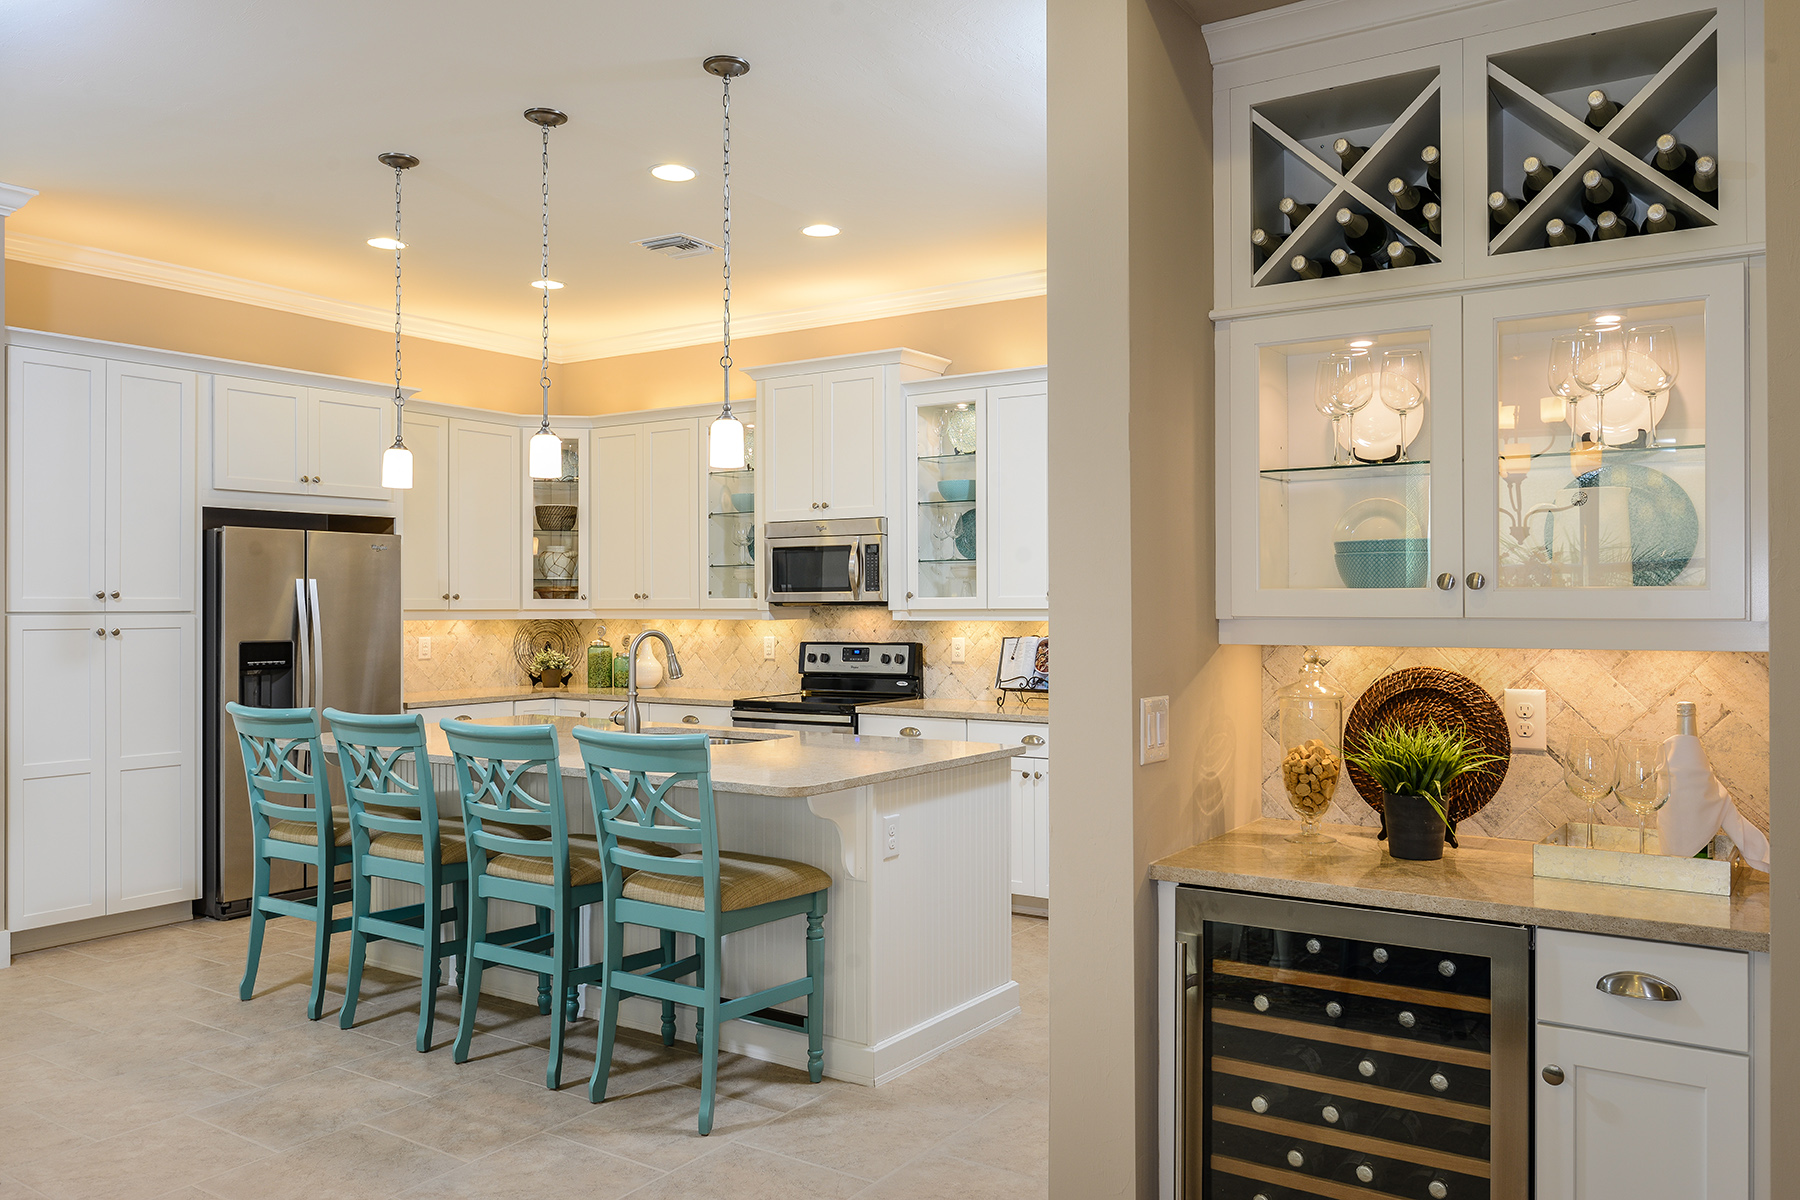 Banyan Plan Kitchen at Compass Landing in Naples Florida by Mattamy Homes